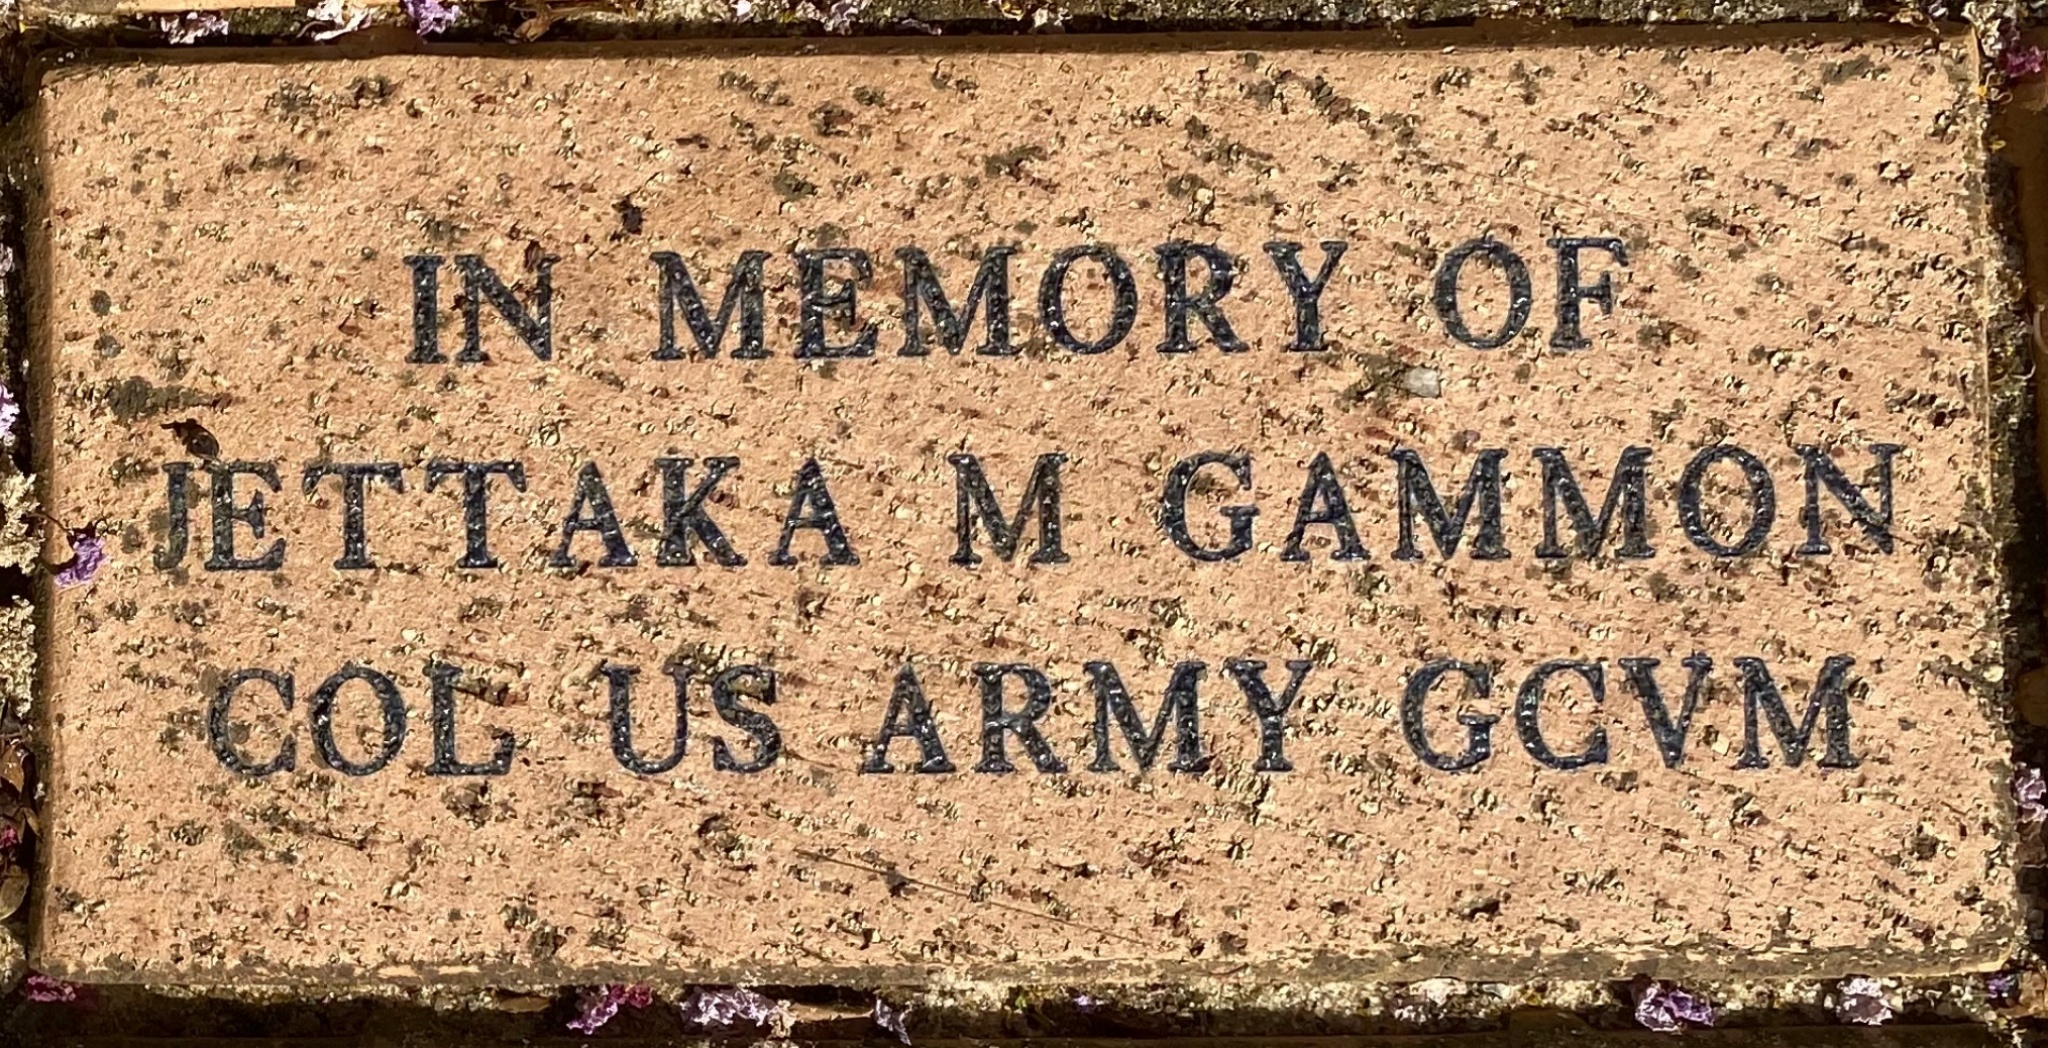 IN MEMORY OF JETTAKA M GAMMON COL US ARMY GCVM